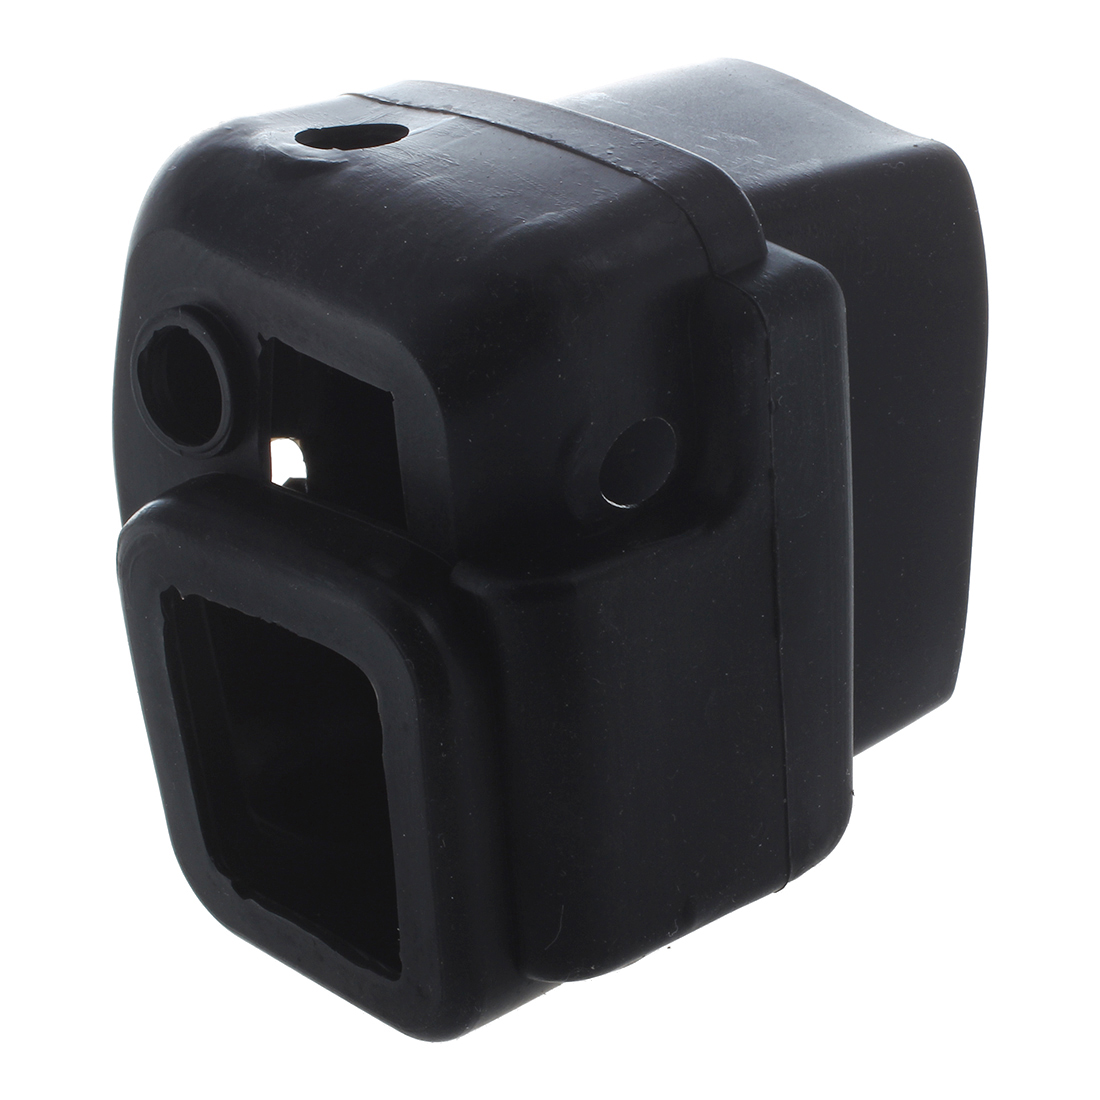 housse etui protection silicone noir pour camescope gopro 3 wt ebay